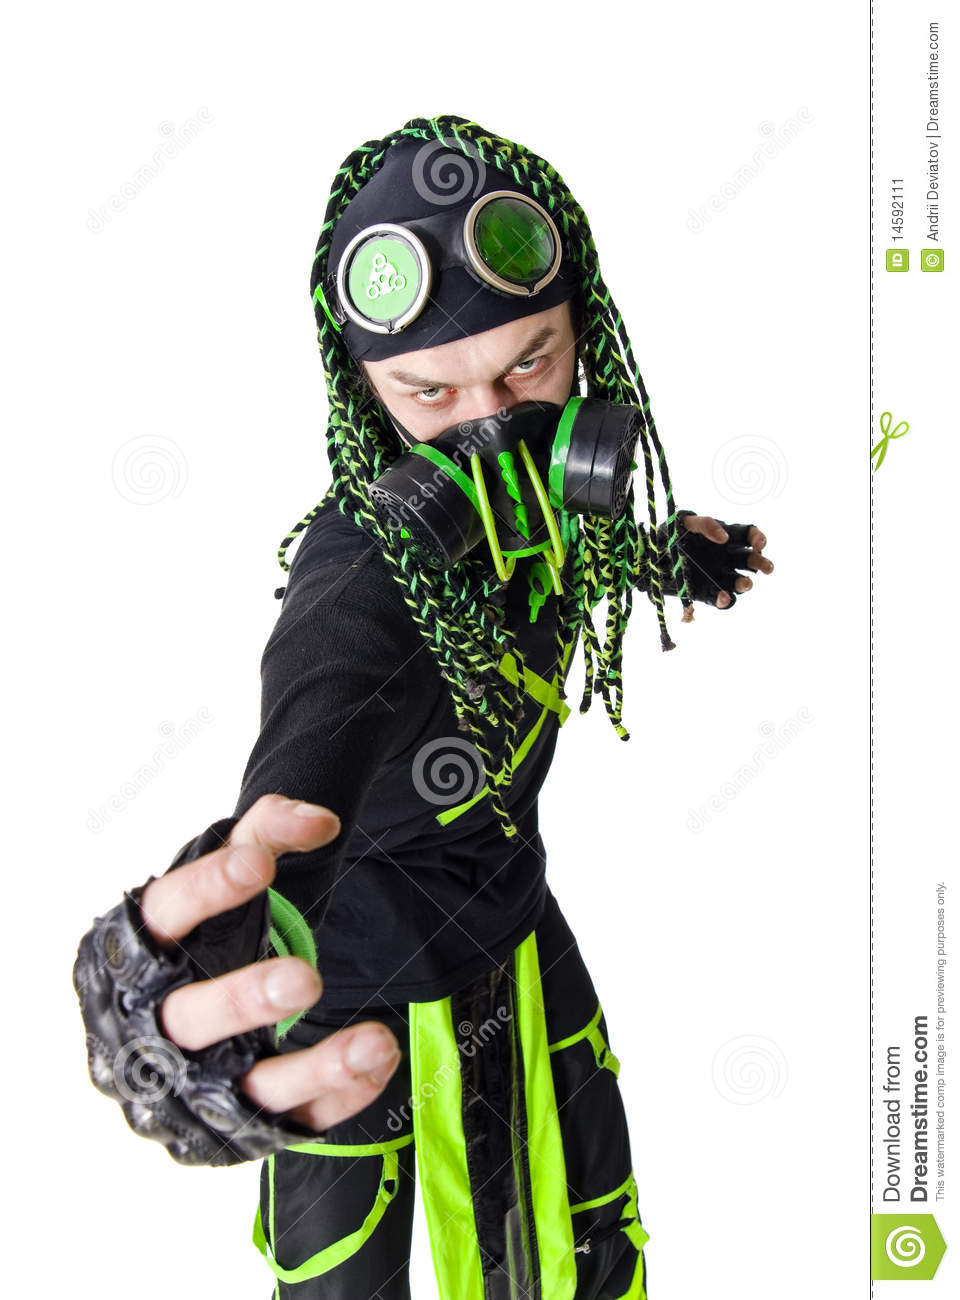 How to Be Cyber Goth